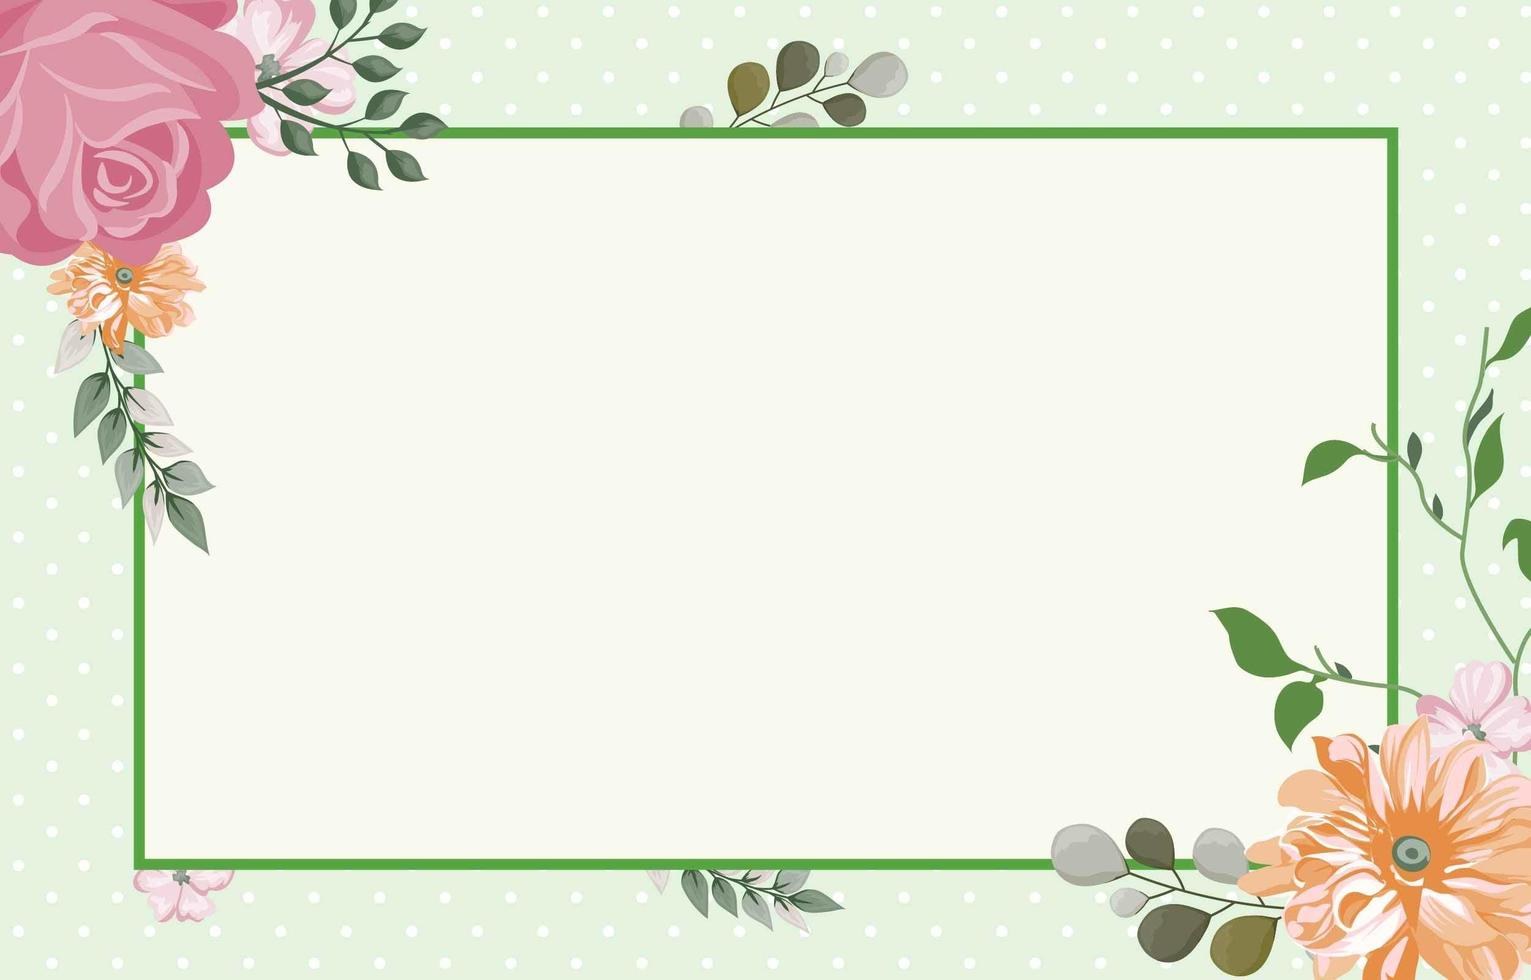 Green flower Background with Green Border vector